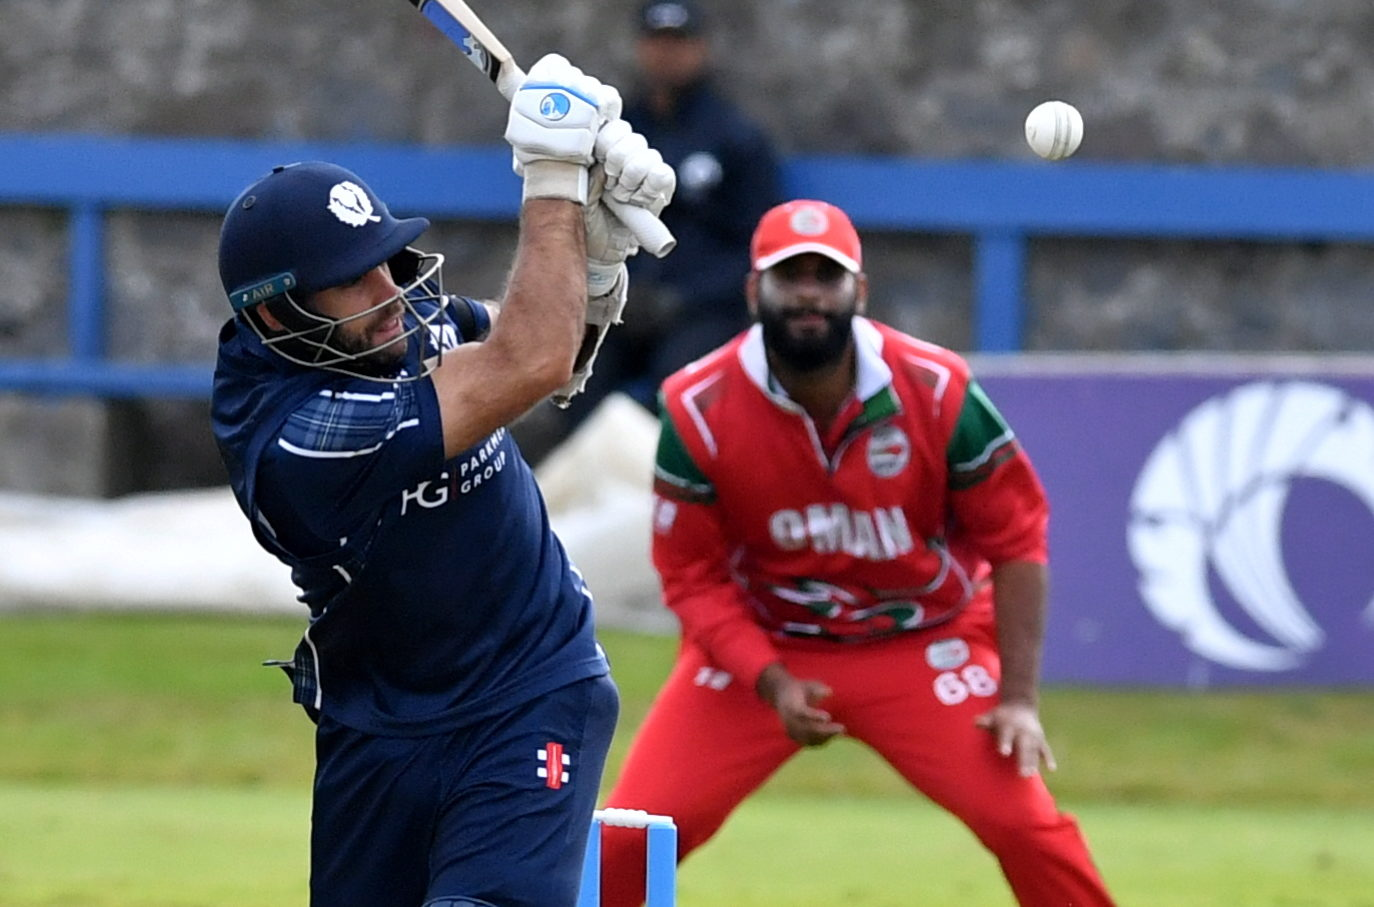 Kyle Coetzer in action against Oman at Mannofield. Picture by Chris Sumner